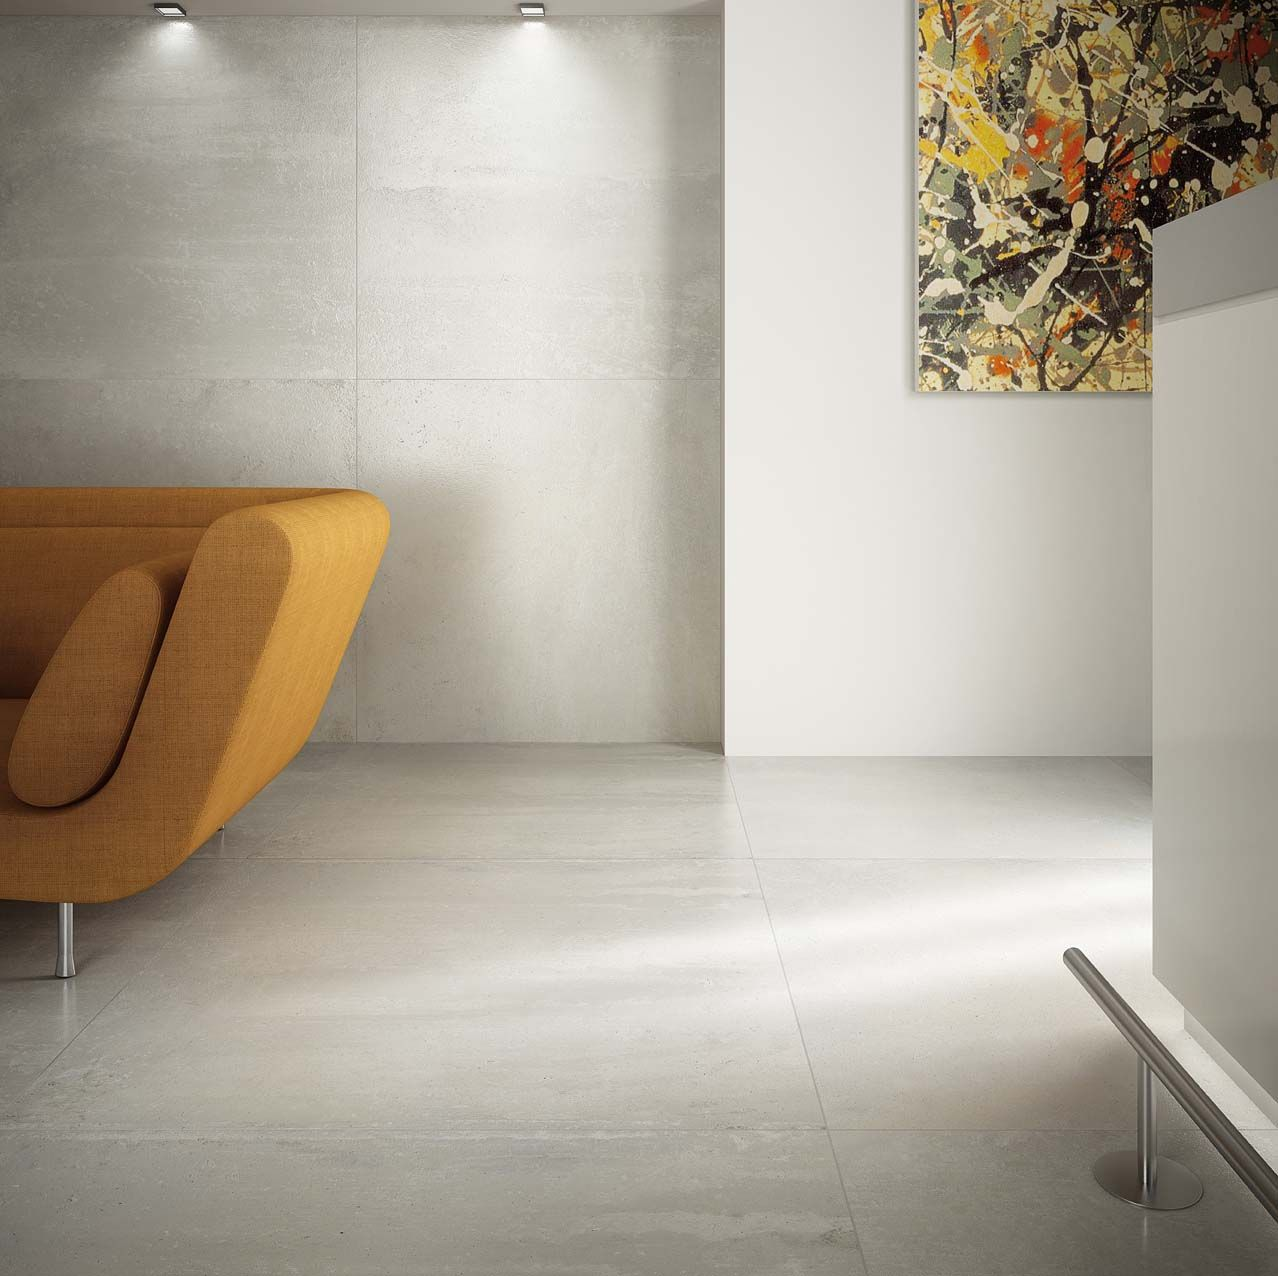 Tiles nextra series designer tile company our products nextra colored body concrete look with soft variaton in a contemporary palette modern floor tiles san francisco tileshop dailygadgetfo Images